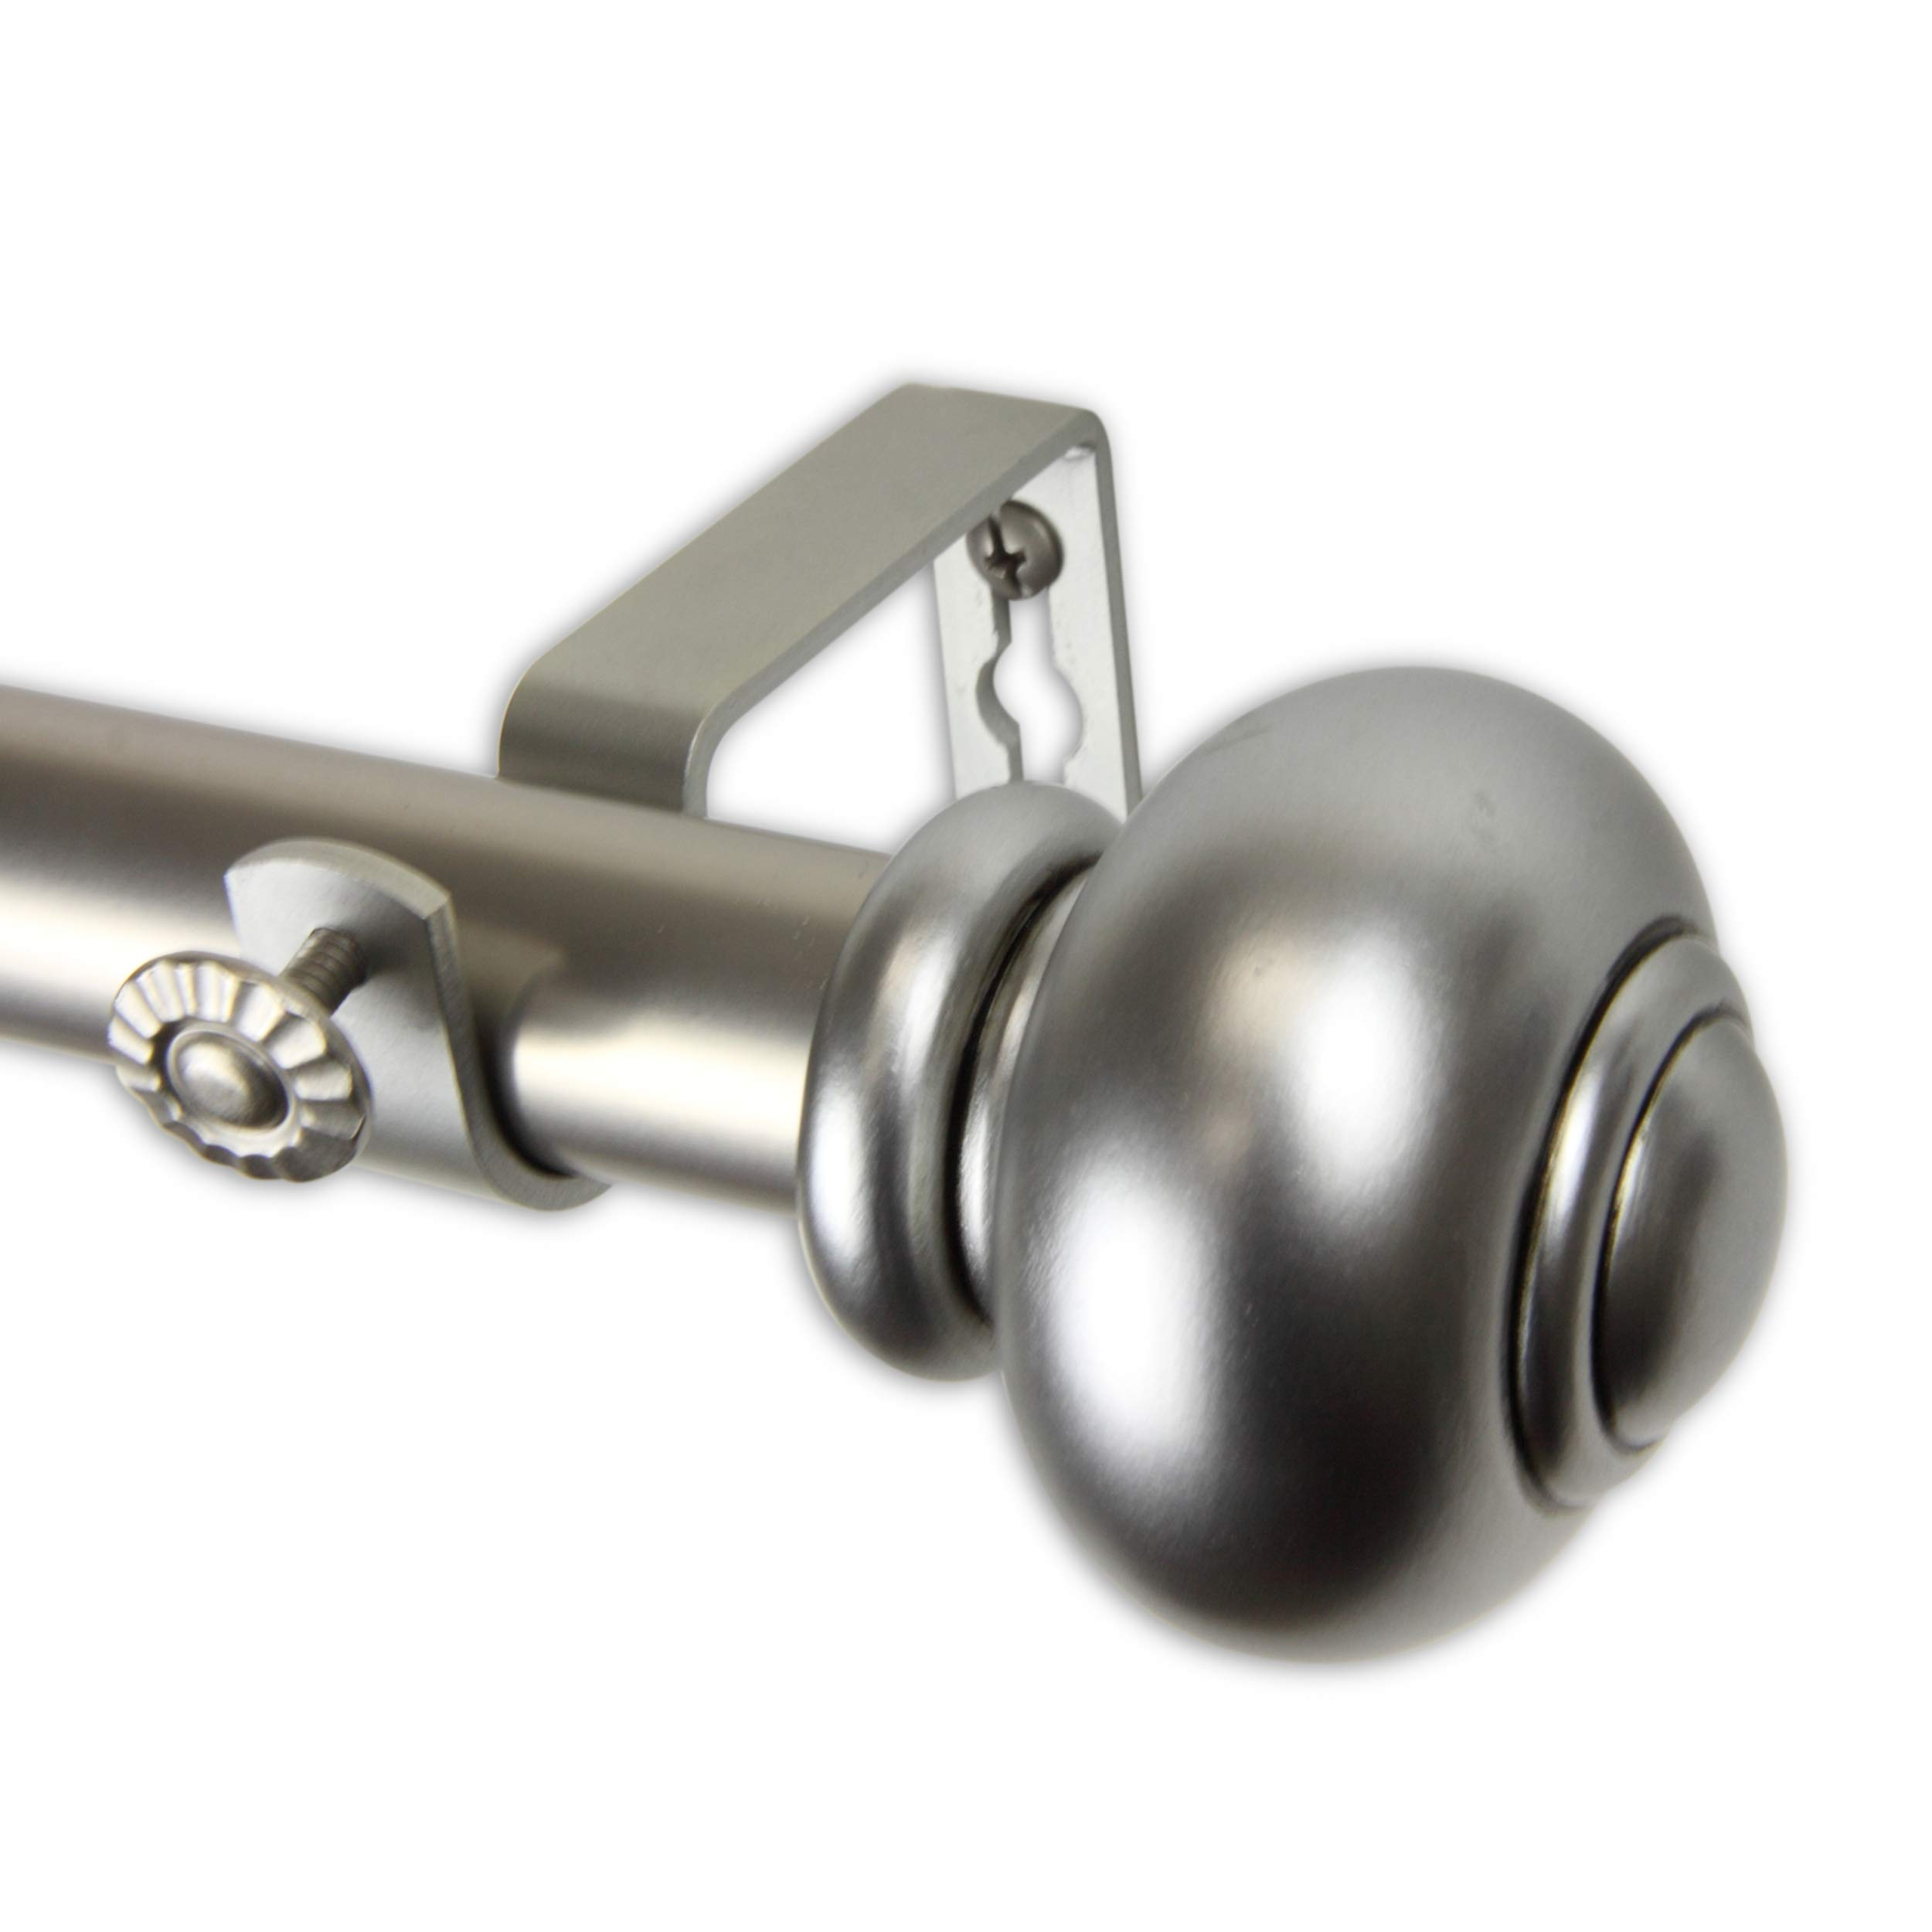 "Rod Desyne 1"" Rotunda Curtain Rod, 120-170 inch, Satin Nickel"